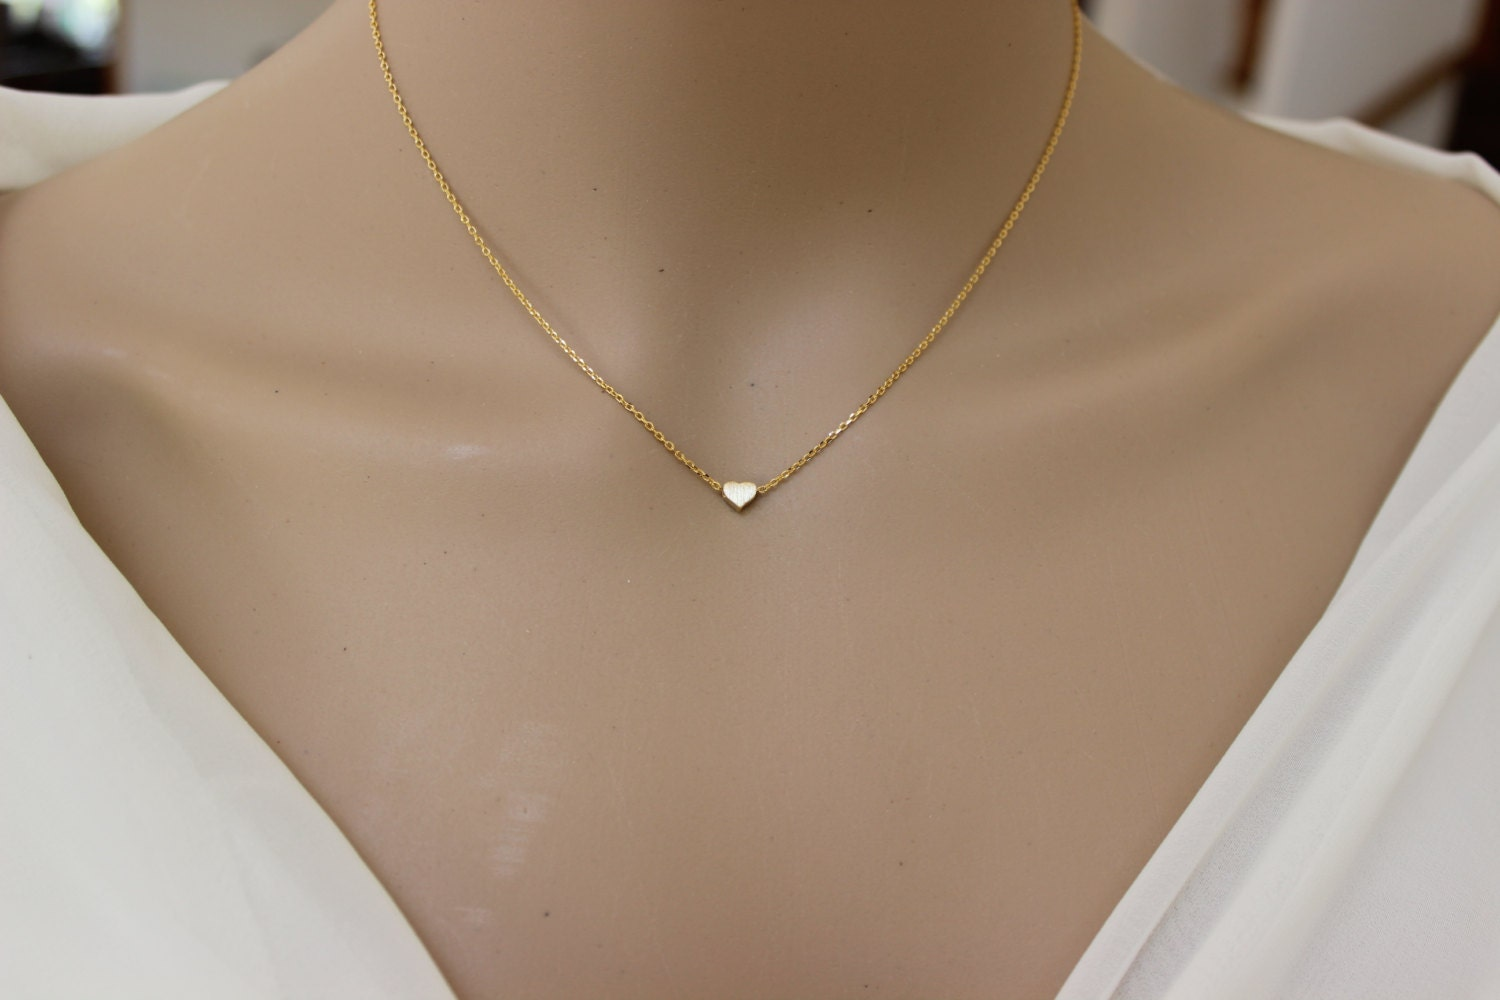 gold cross party tiny listing necklacesmall bridal zoom fullxfull il necklace small